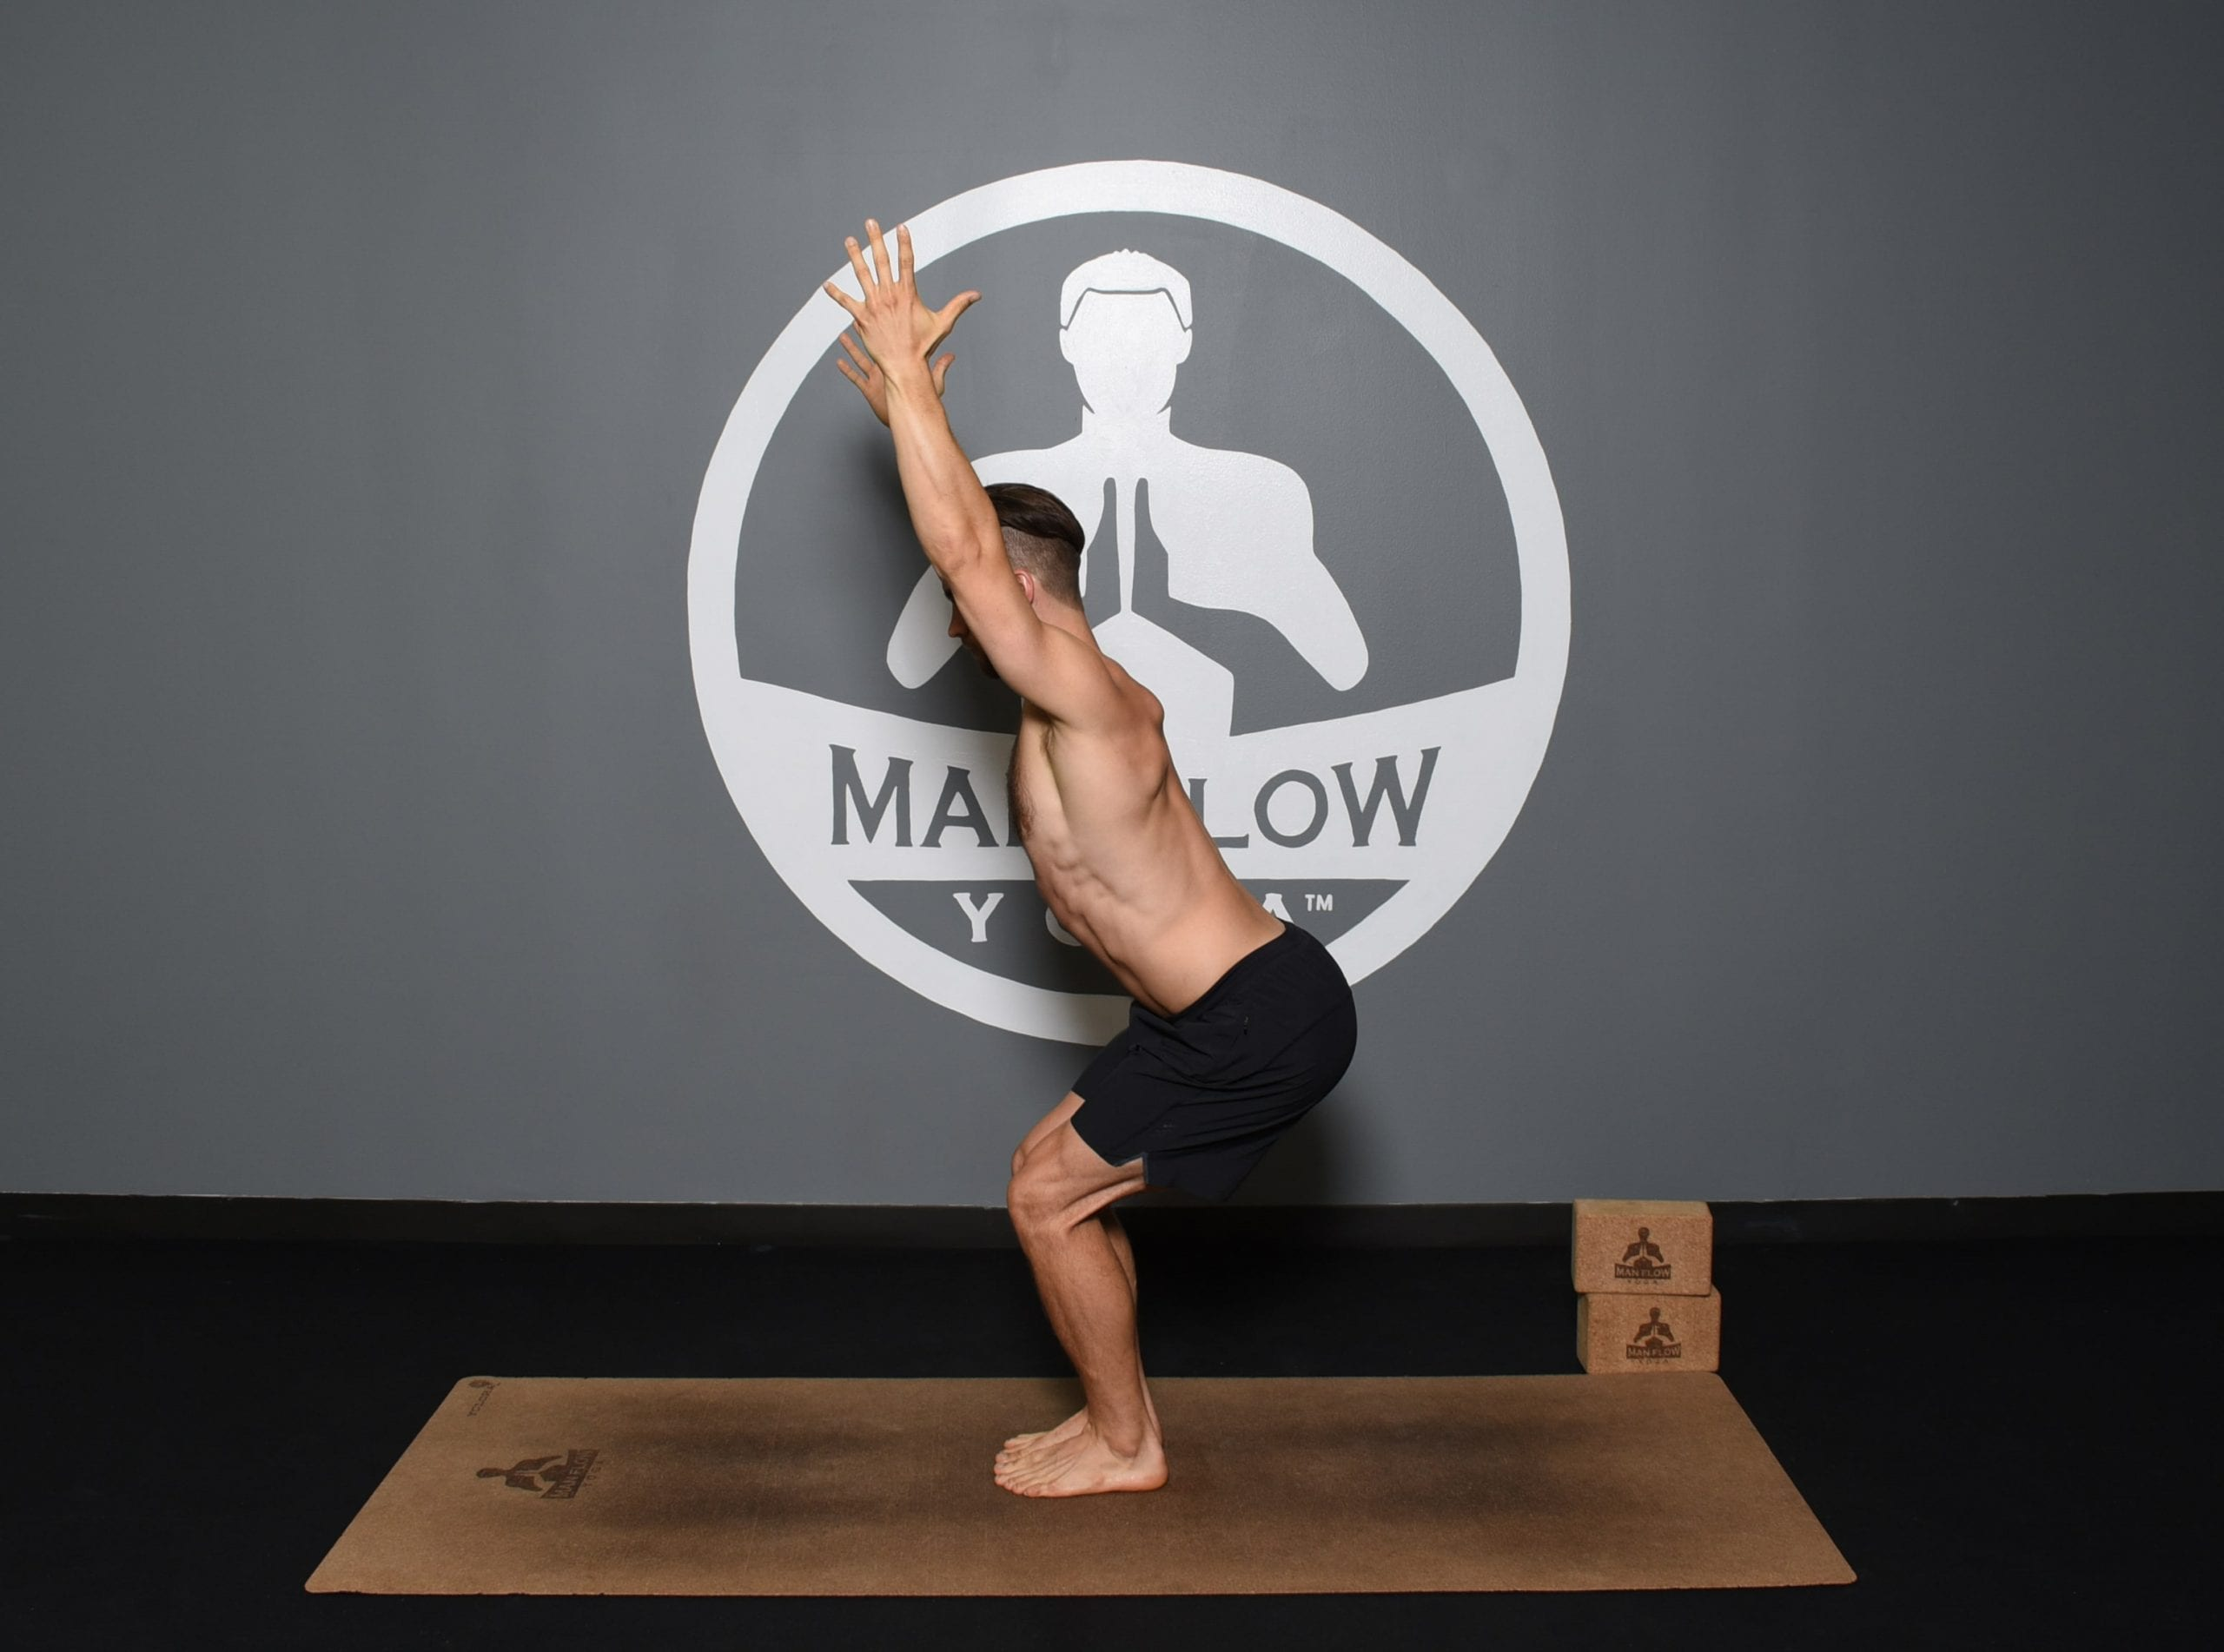 Yoga for Obesity - Chair Pose Hands Above